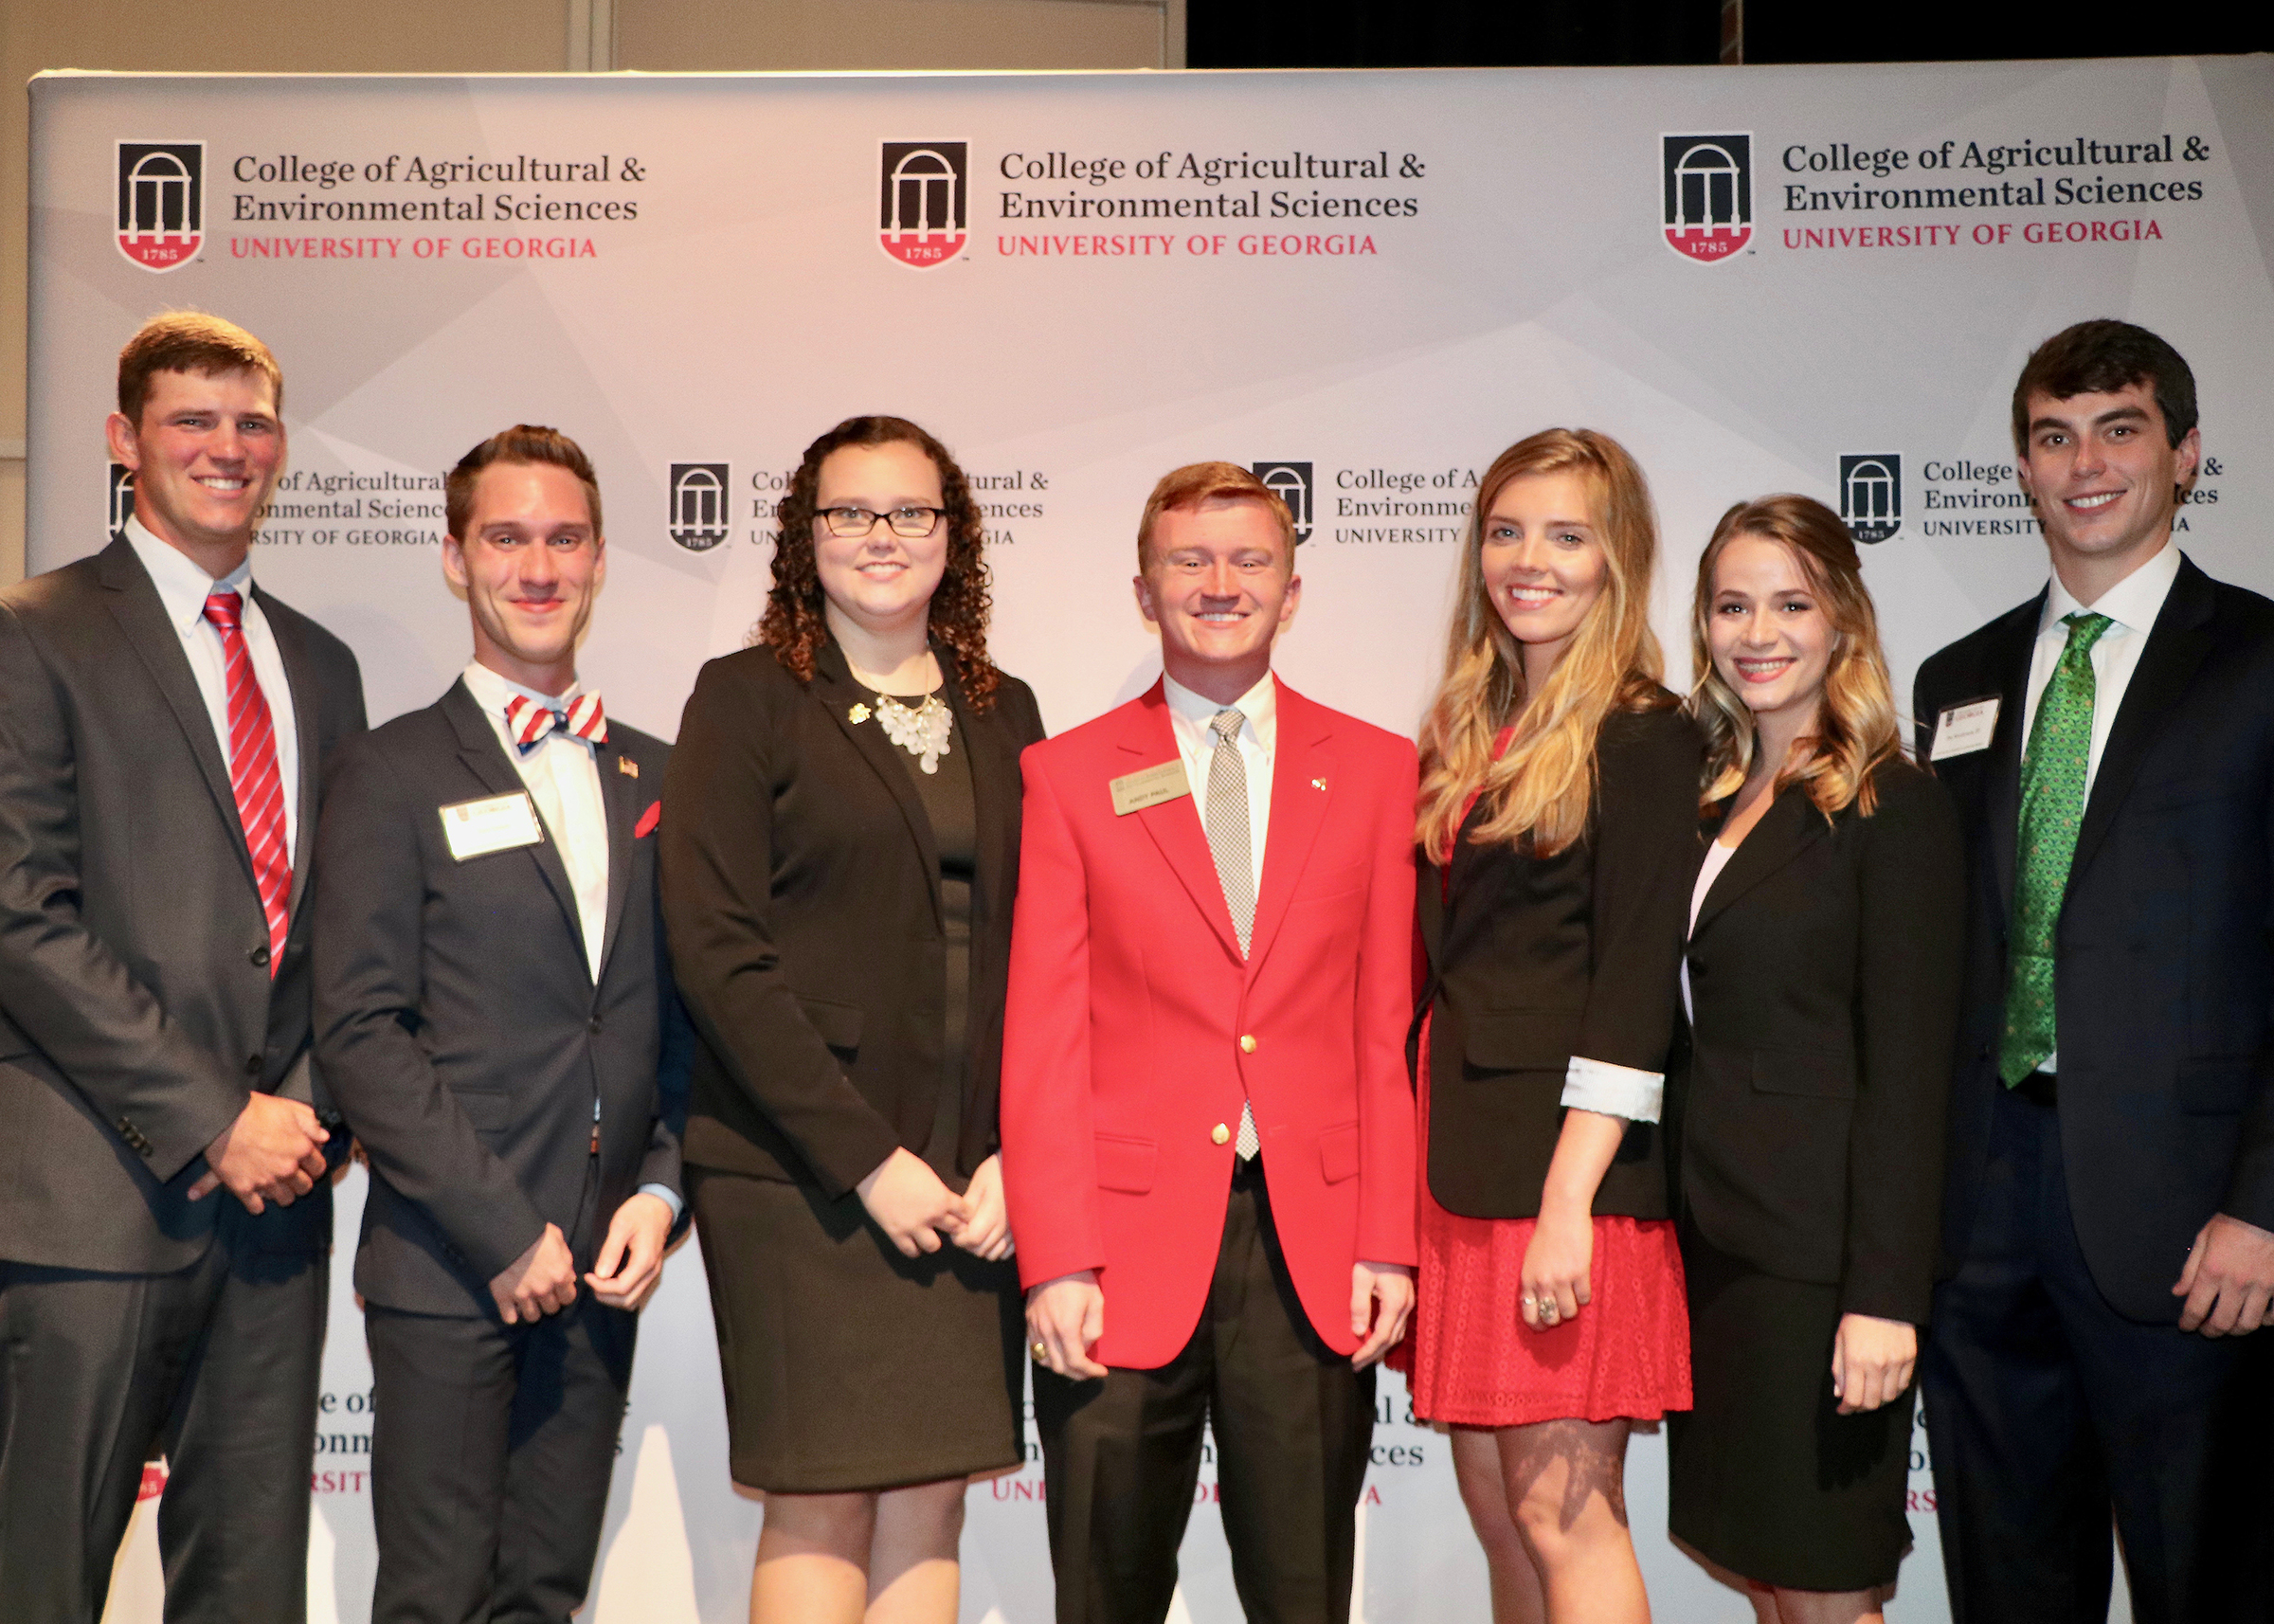 UGA College of Agricultural and Environmental Sciences Congressional Agricultural Fellows, from left, Taylor Teague, Zane Tackett, Ashley Smith, Andy Paul, Hayley Nielsen, Makinizi Hoover and Jim Henderson will spend 12 weeks this summer working with Georgia congressmen and senators in Washington, D.C.